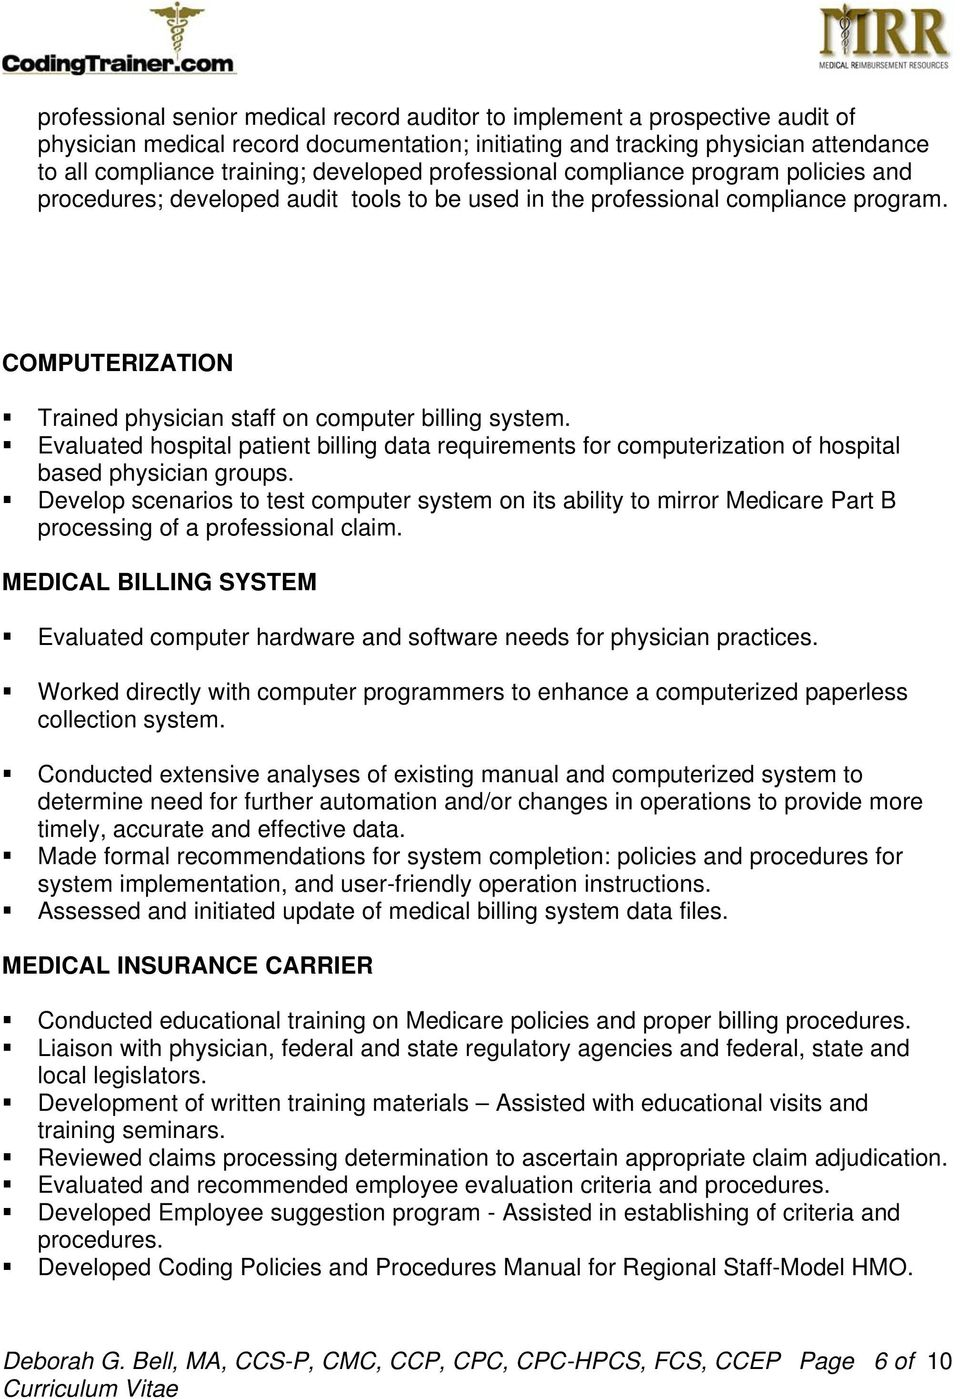 COMPUTERIZATION Trained physician staff on computer billing system. Evaluated hospital patient billing data requirements for computerization of hospital based physician groups.